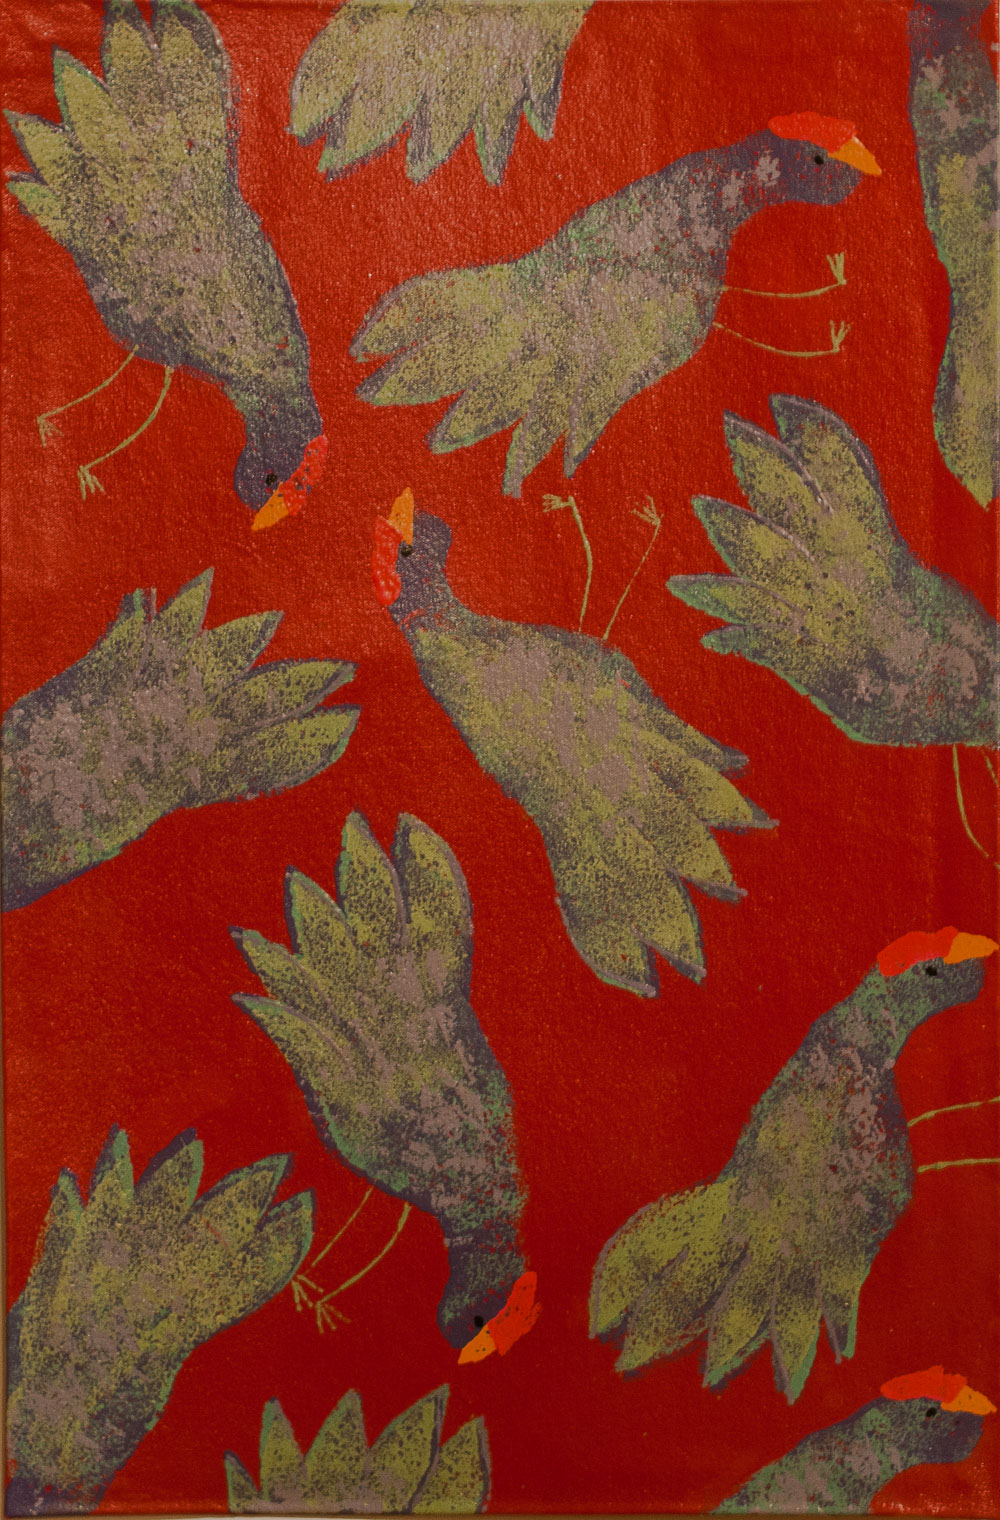 Chickens Scratching on Red